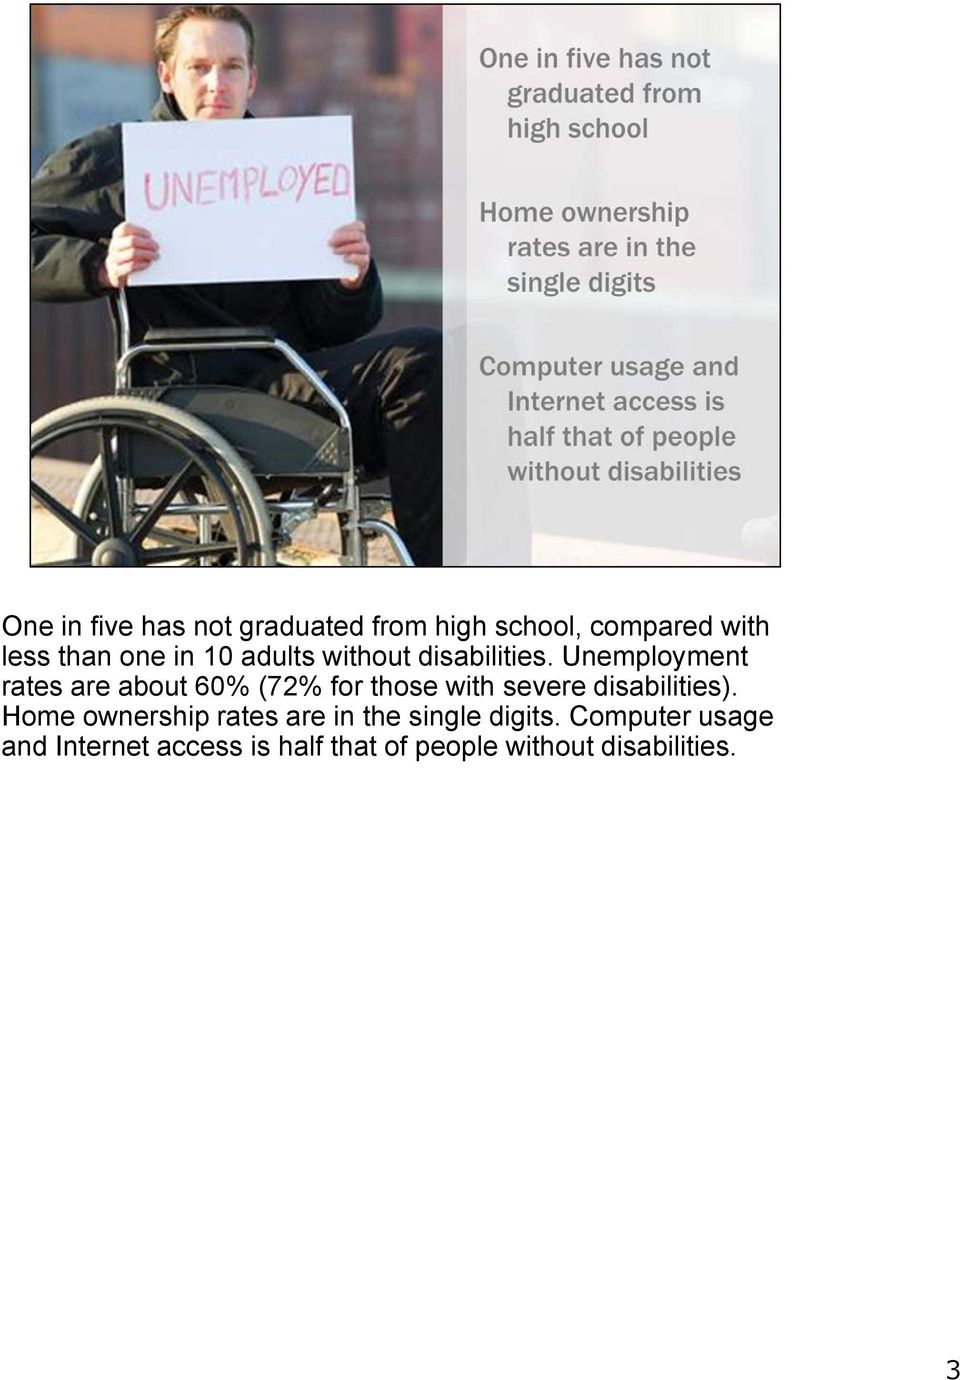 Unemployment rates are about 60% (72% for those with severe disabilities).